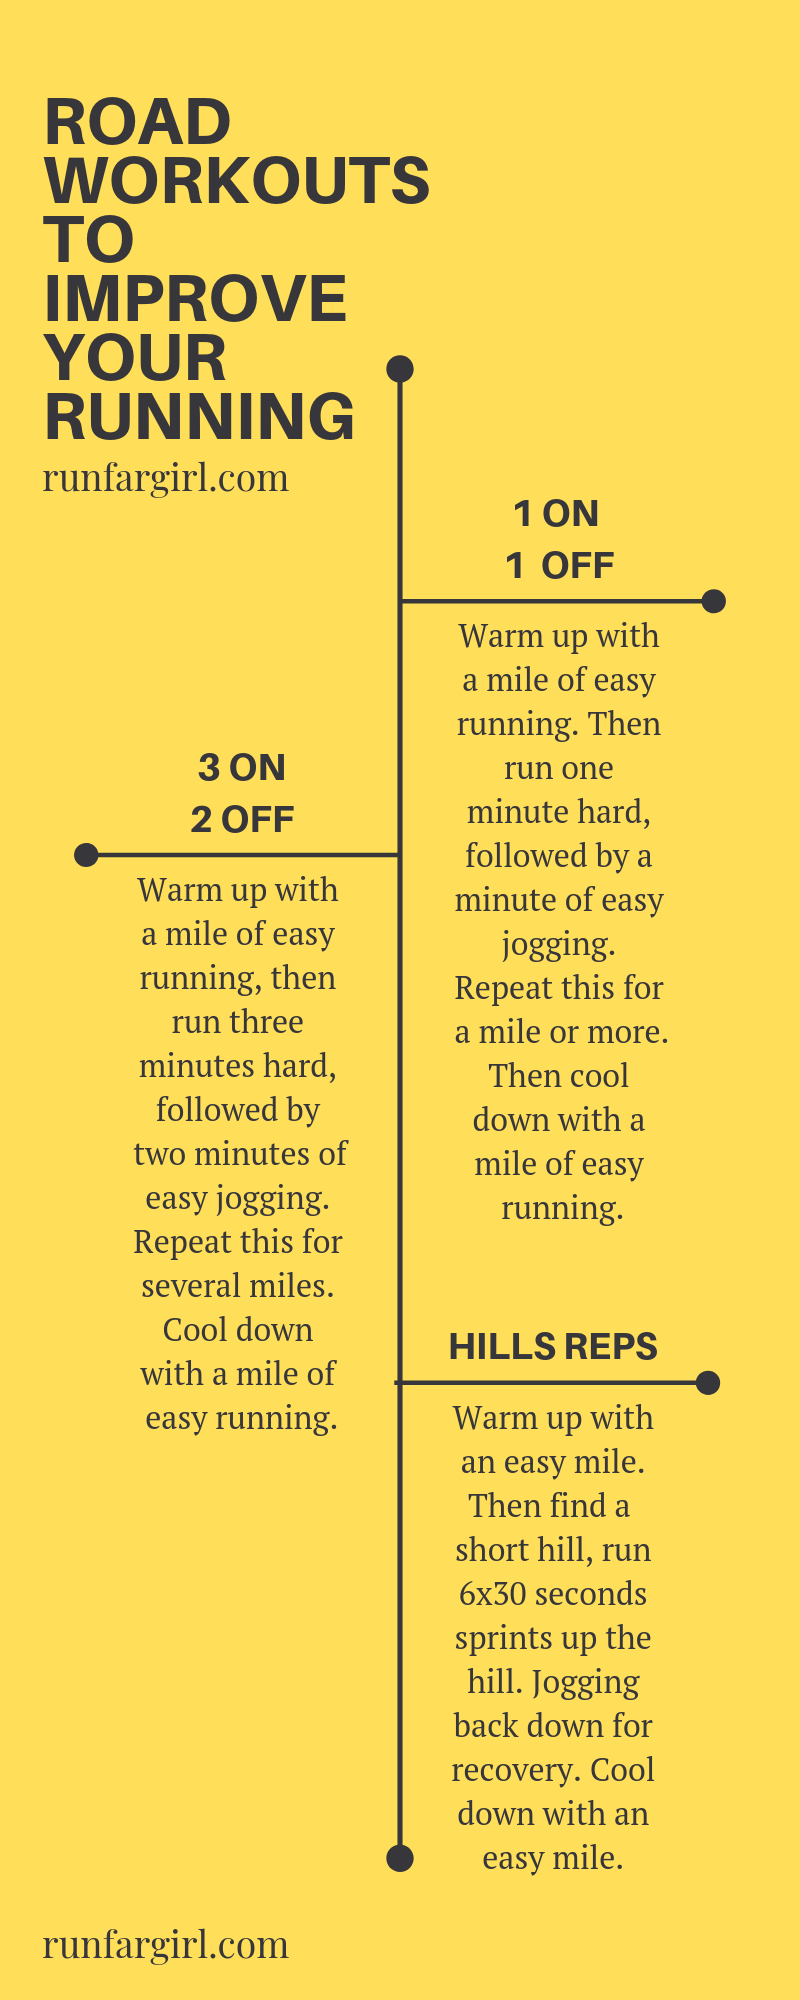 3 road workouts to improve your running